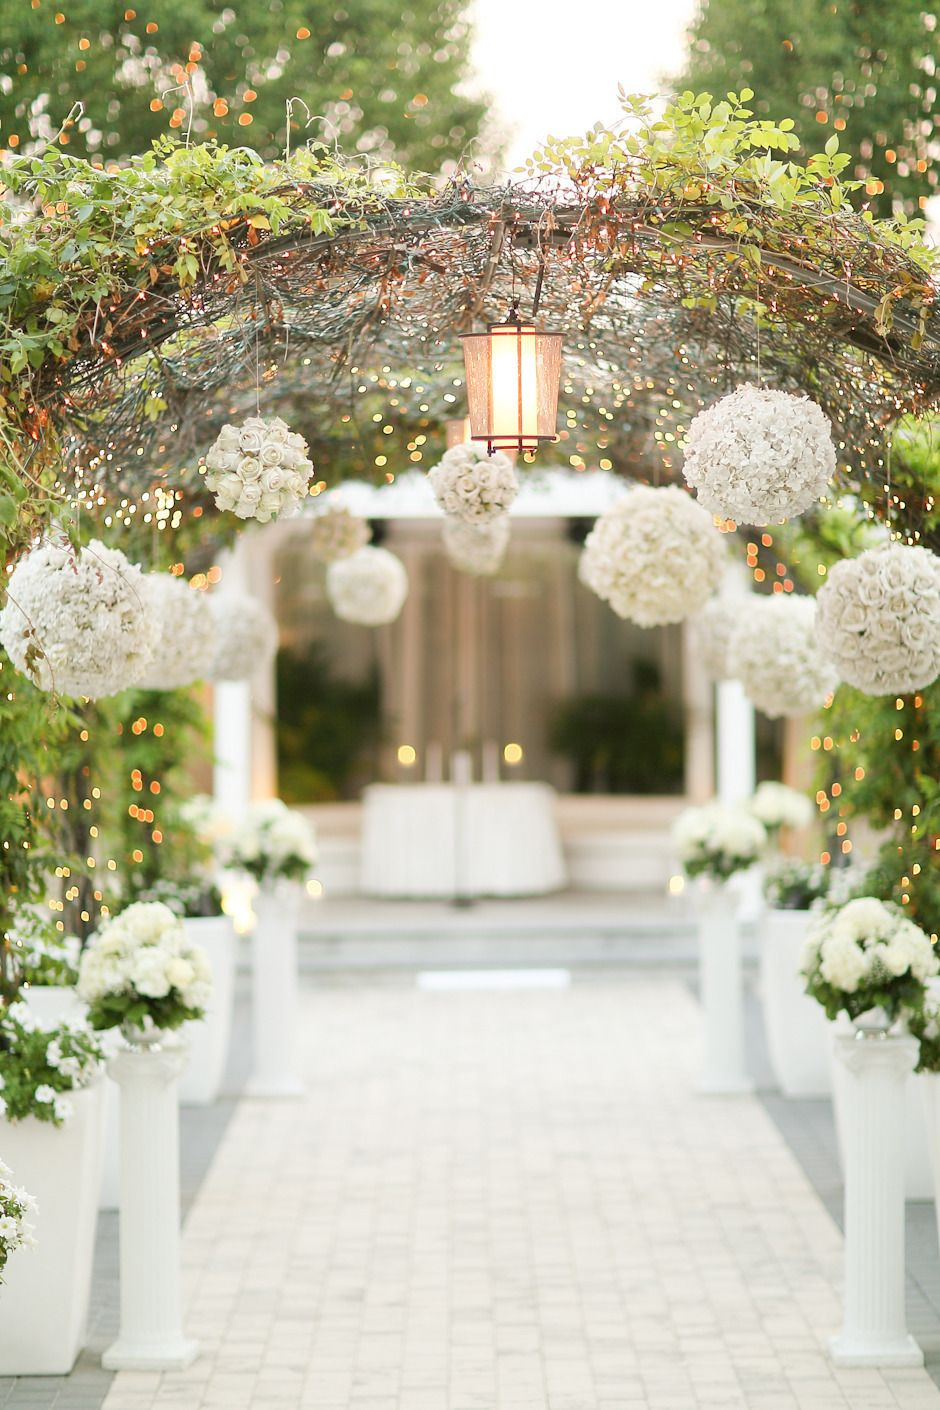 Ayenia Nour Photography - love the walkway effect, would use it as the entrance to my reception area